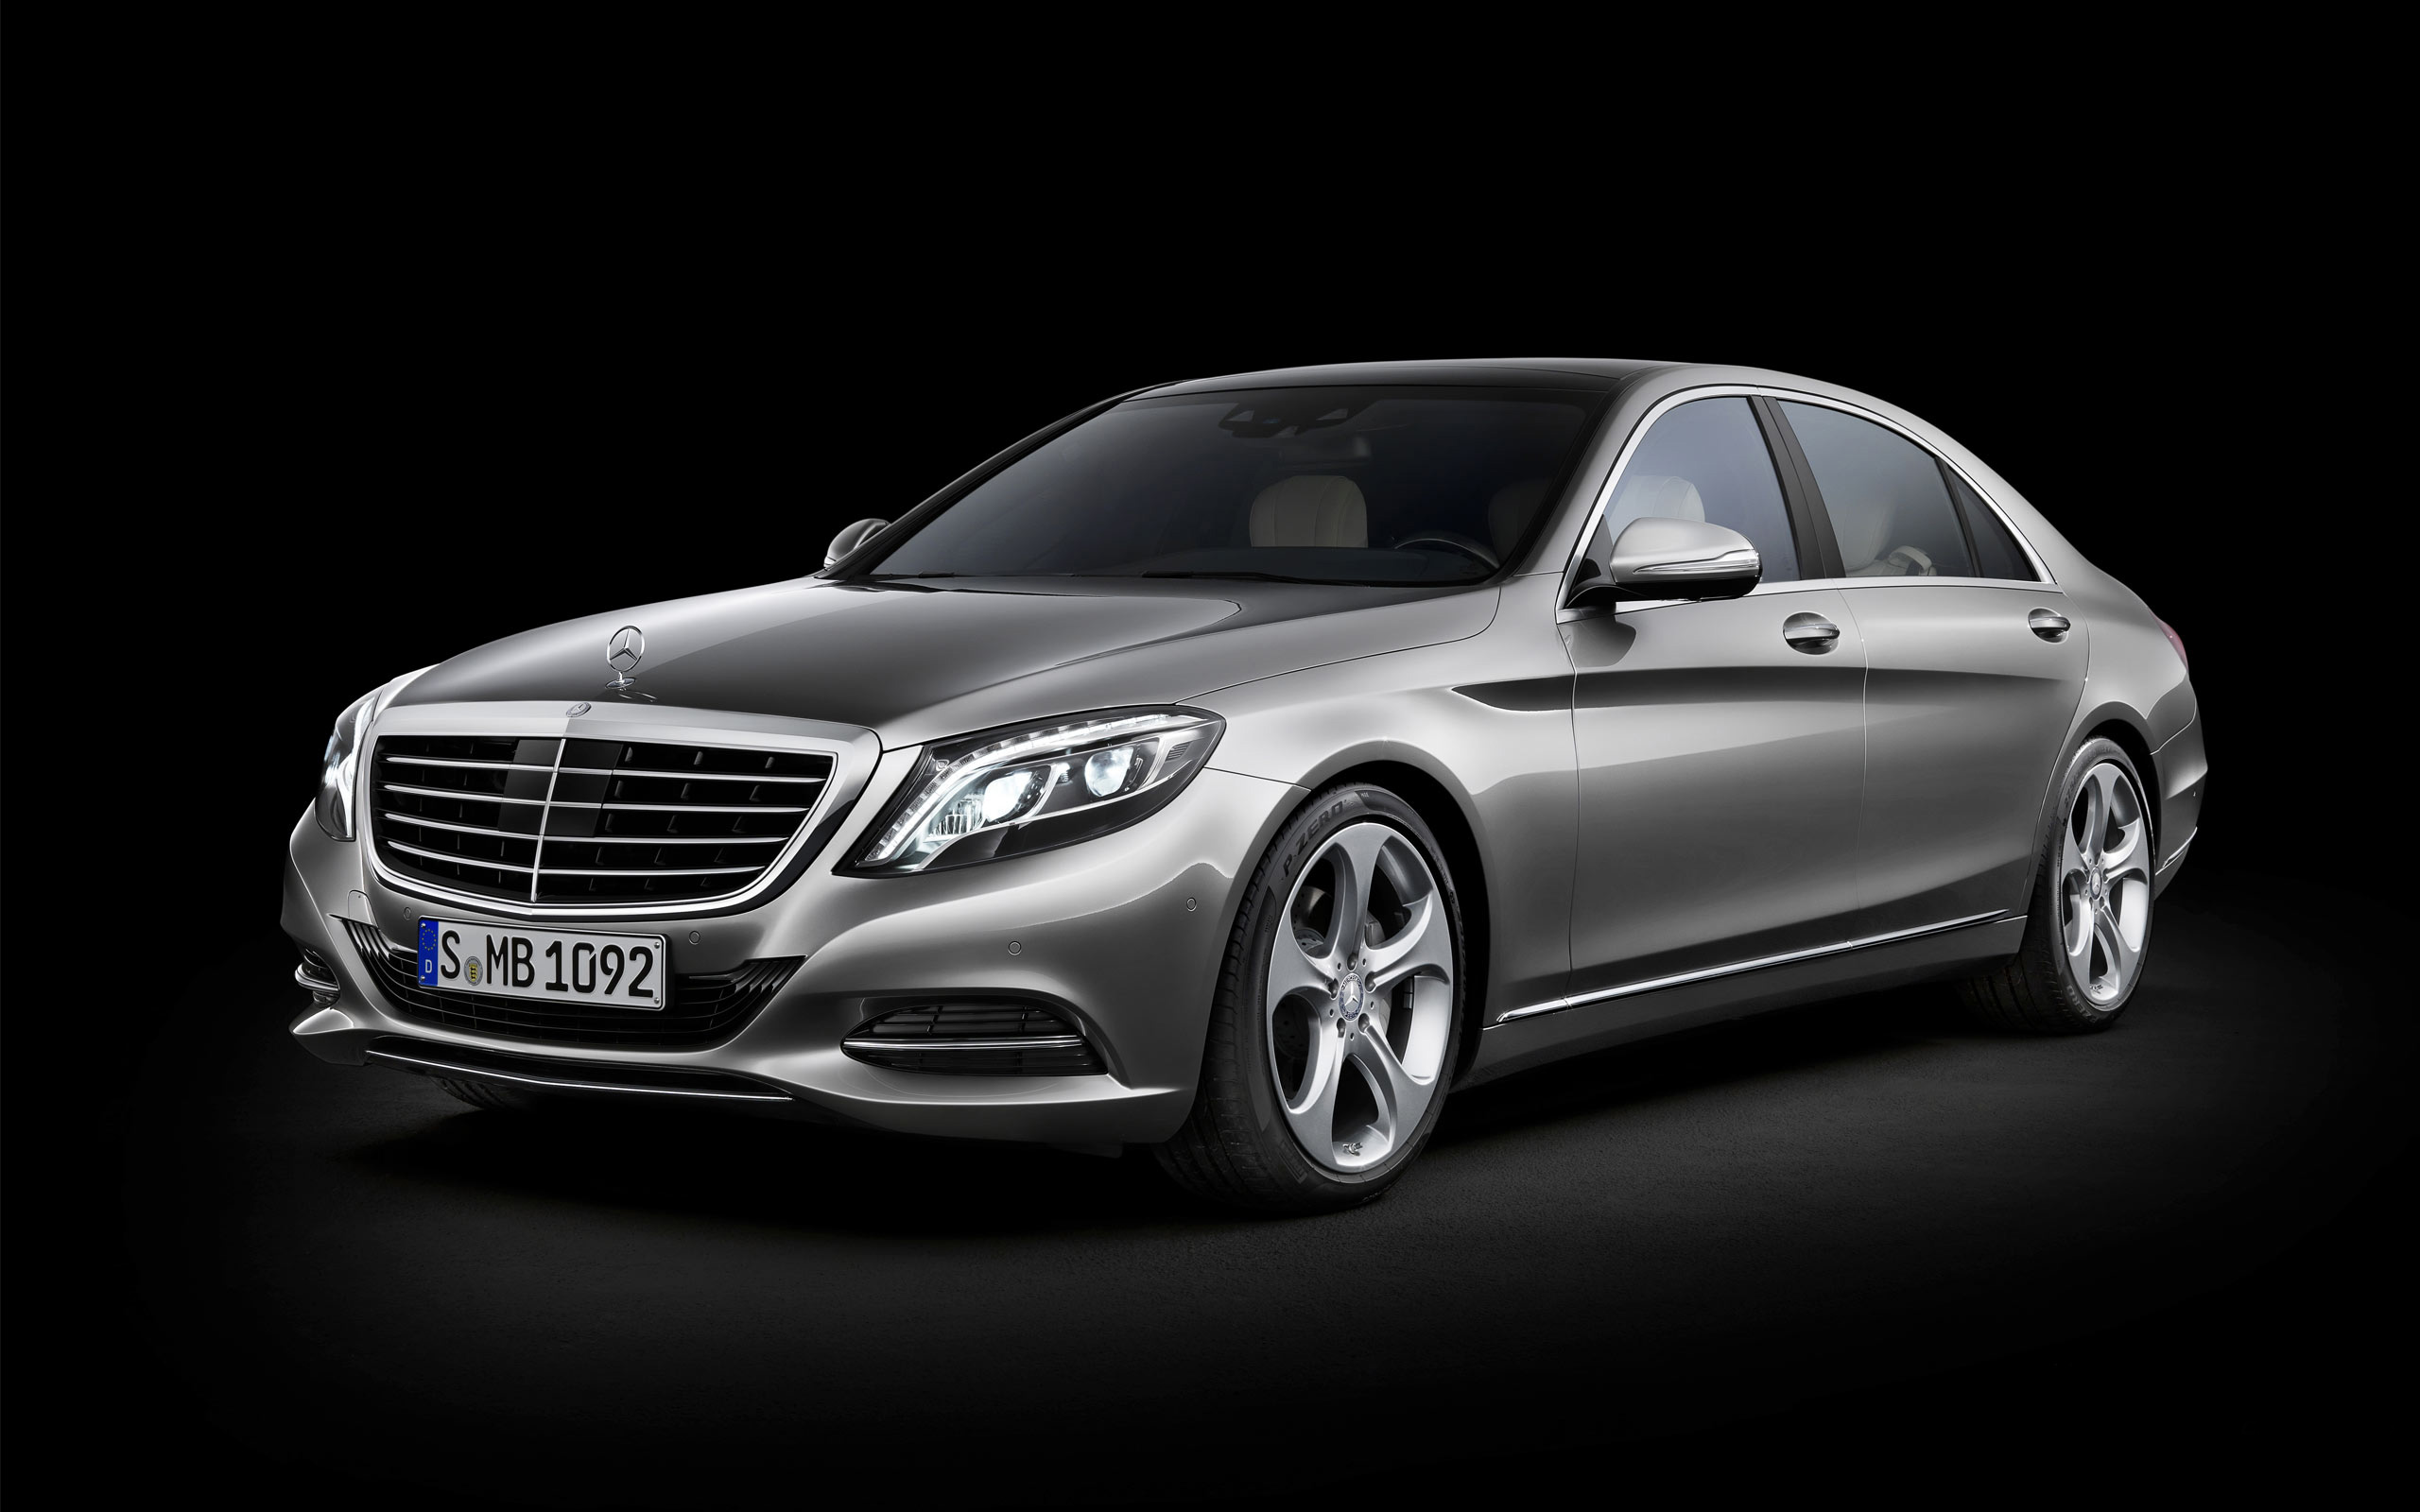 2014 mercedes benz s class wallpaper hd car wallpapers id 3427. Black Bedroom Furniture Sets. Home Design Ideas